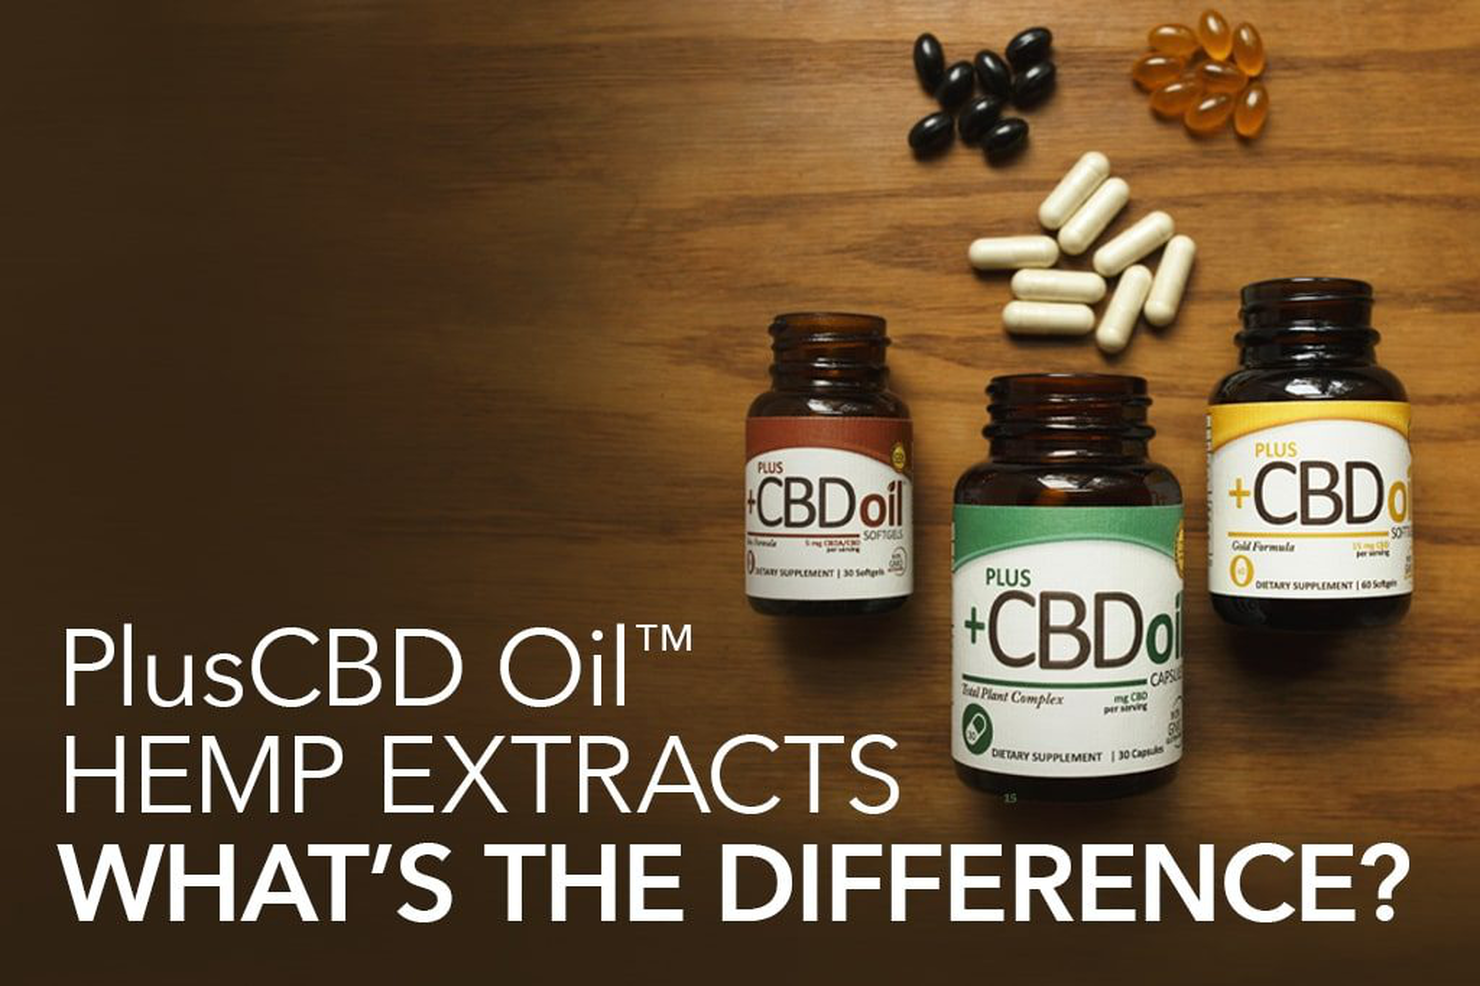 PlusCBD™ Oil Full Spectrum Hemp Extracts: What's the difference?